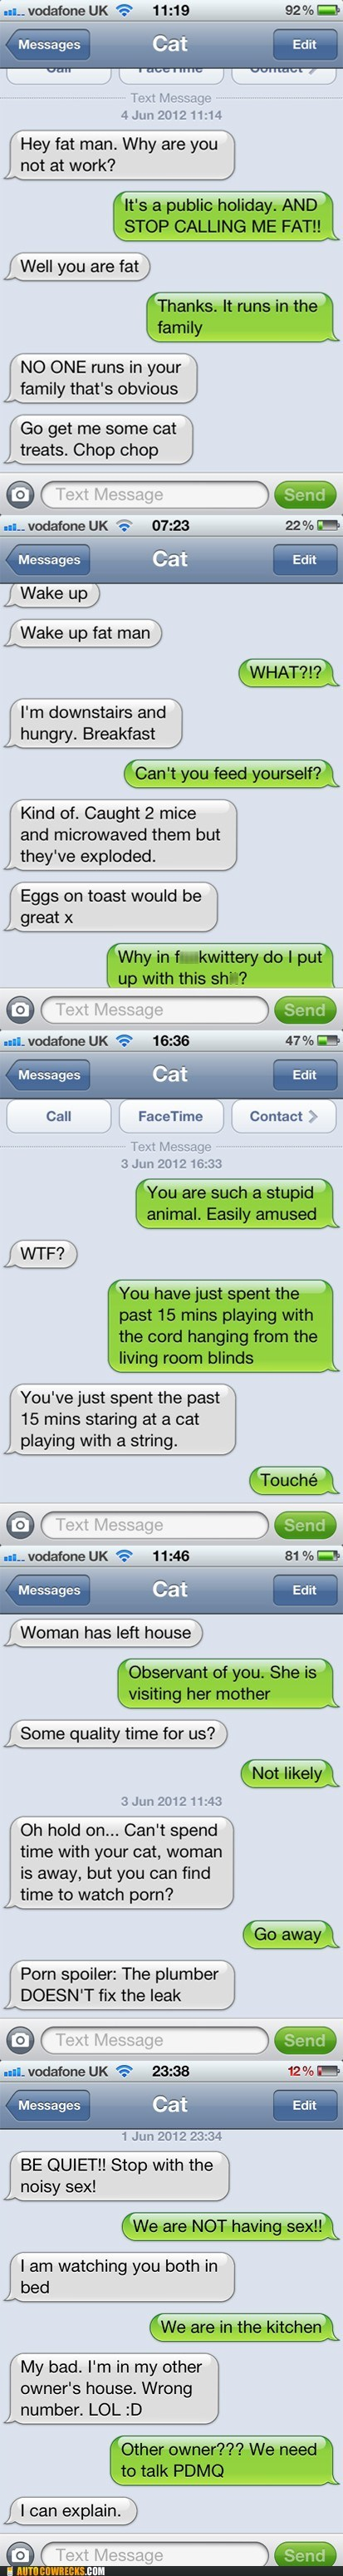 AutocoWrecks,Cats,g rated,iPhones,only a matter of time,texts from cat